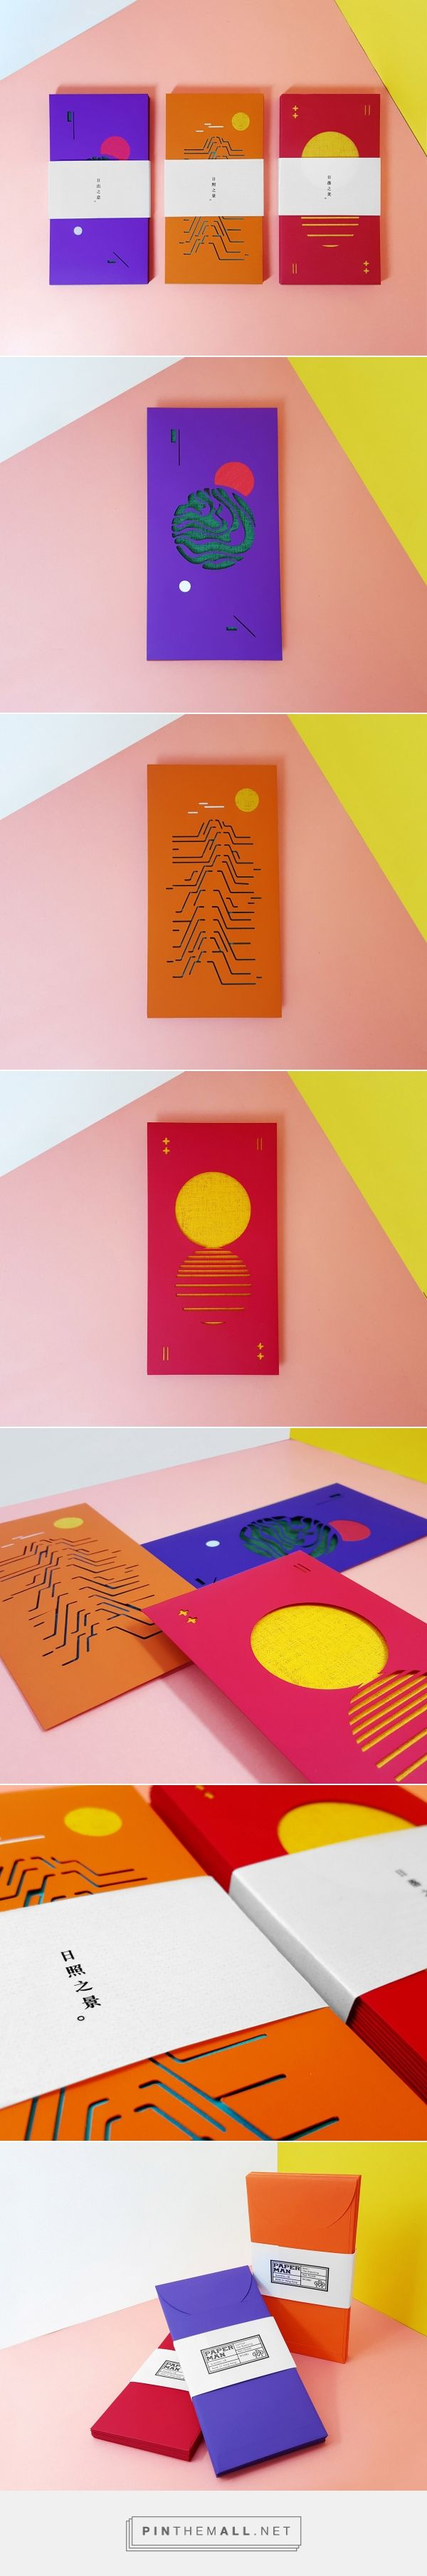 "Sunrise to Sunset Red pocket packaging on Behance by K. Ko Hong Kong, Hong  Kong curated by Packaging Diva PD. A set of 3 designs with the theme ""The sun"". 3 means eternal in Chinese tradition."